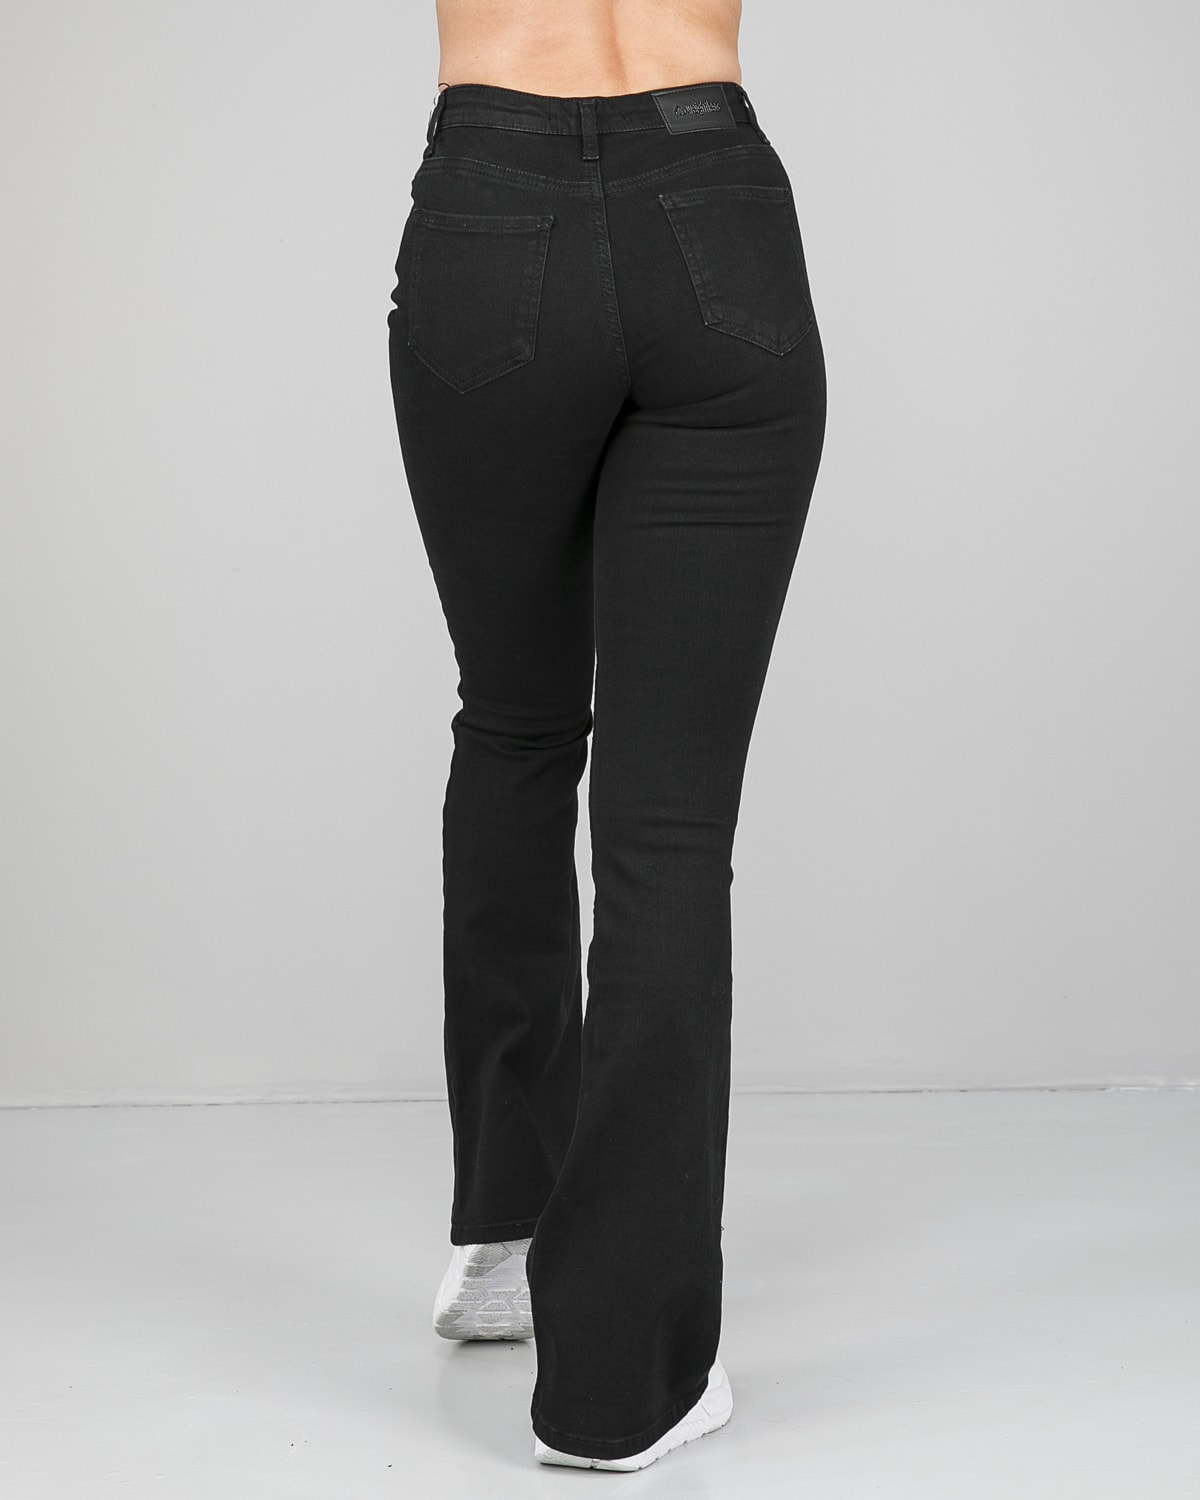 Weightless Chrissy Bootcut Stretch Jeans Black Tights.no